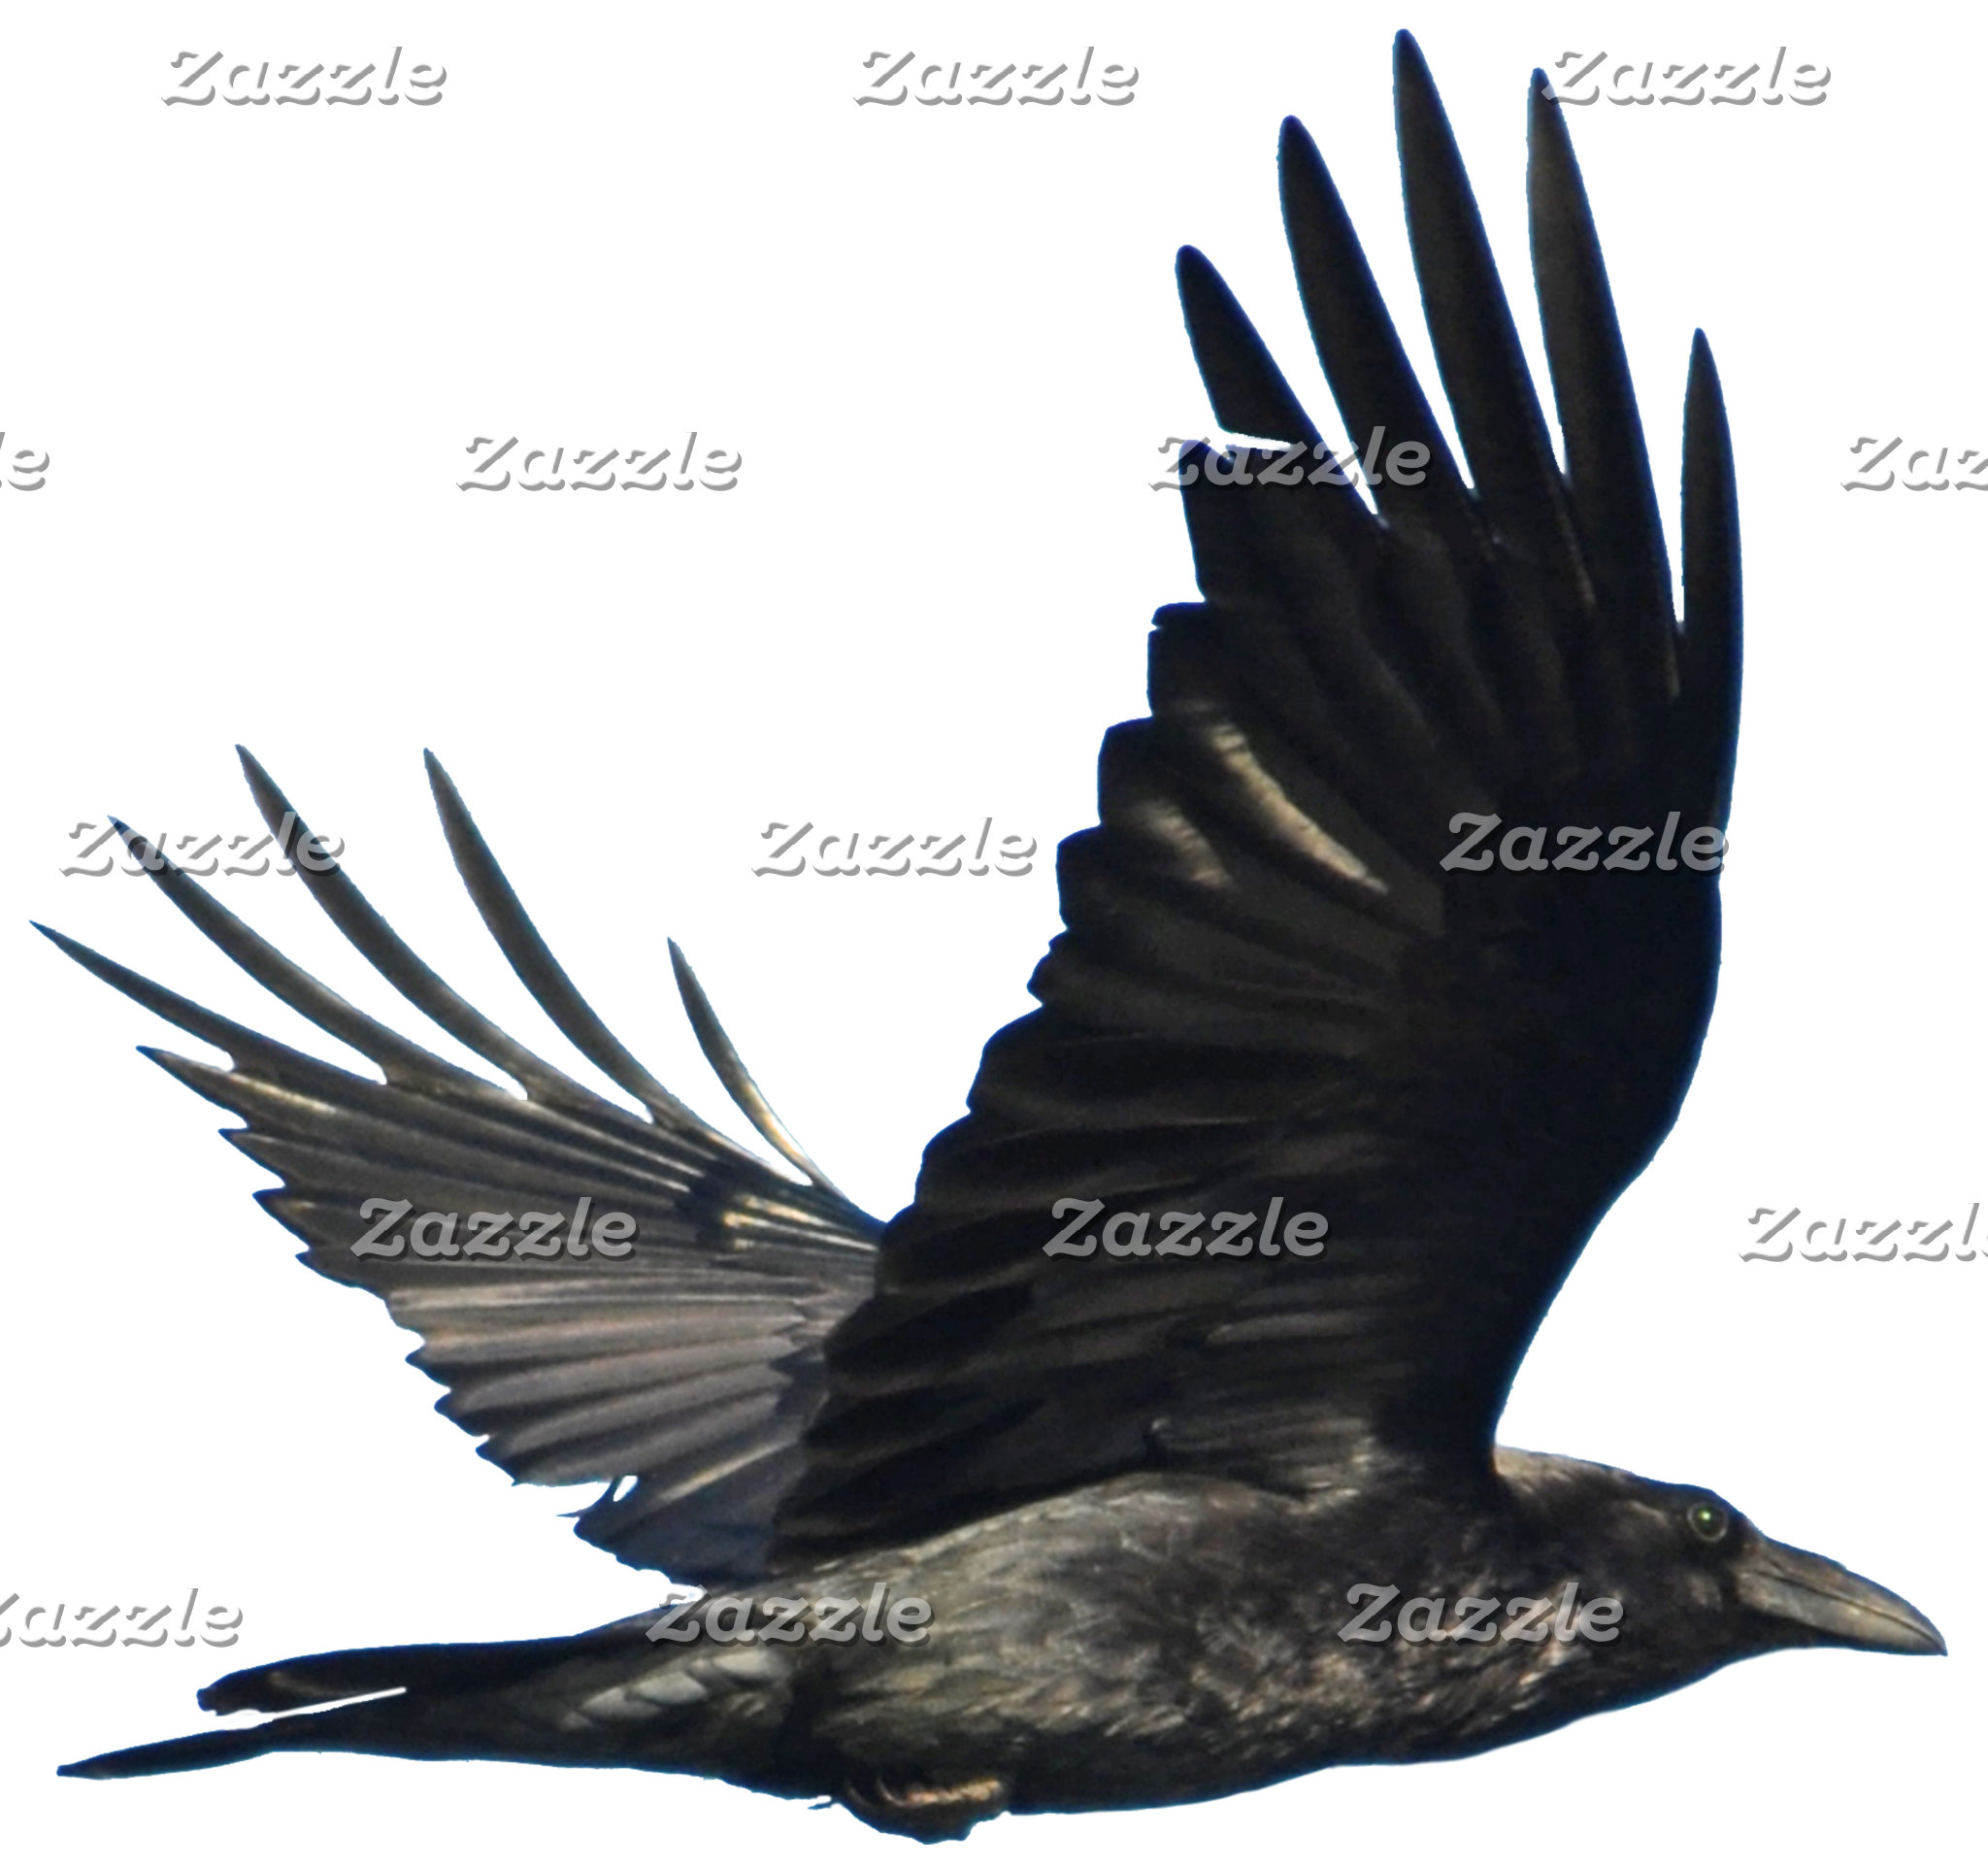 RAVENS and CROWS - Black or White